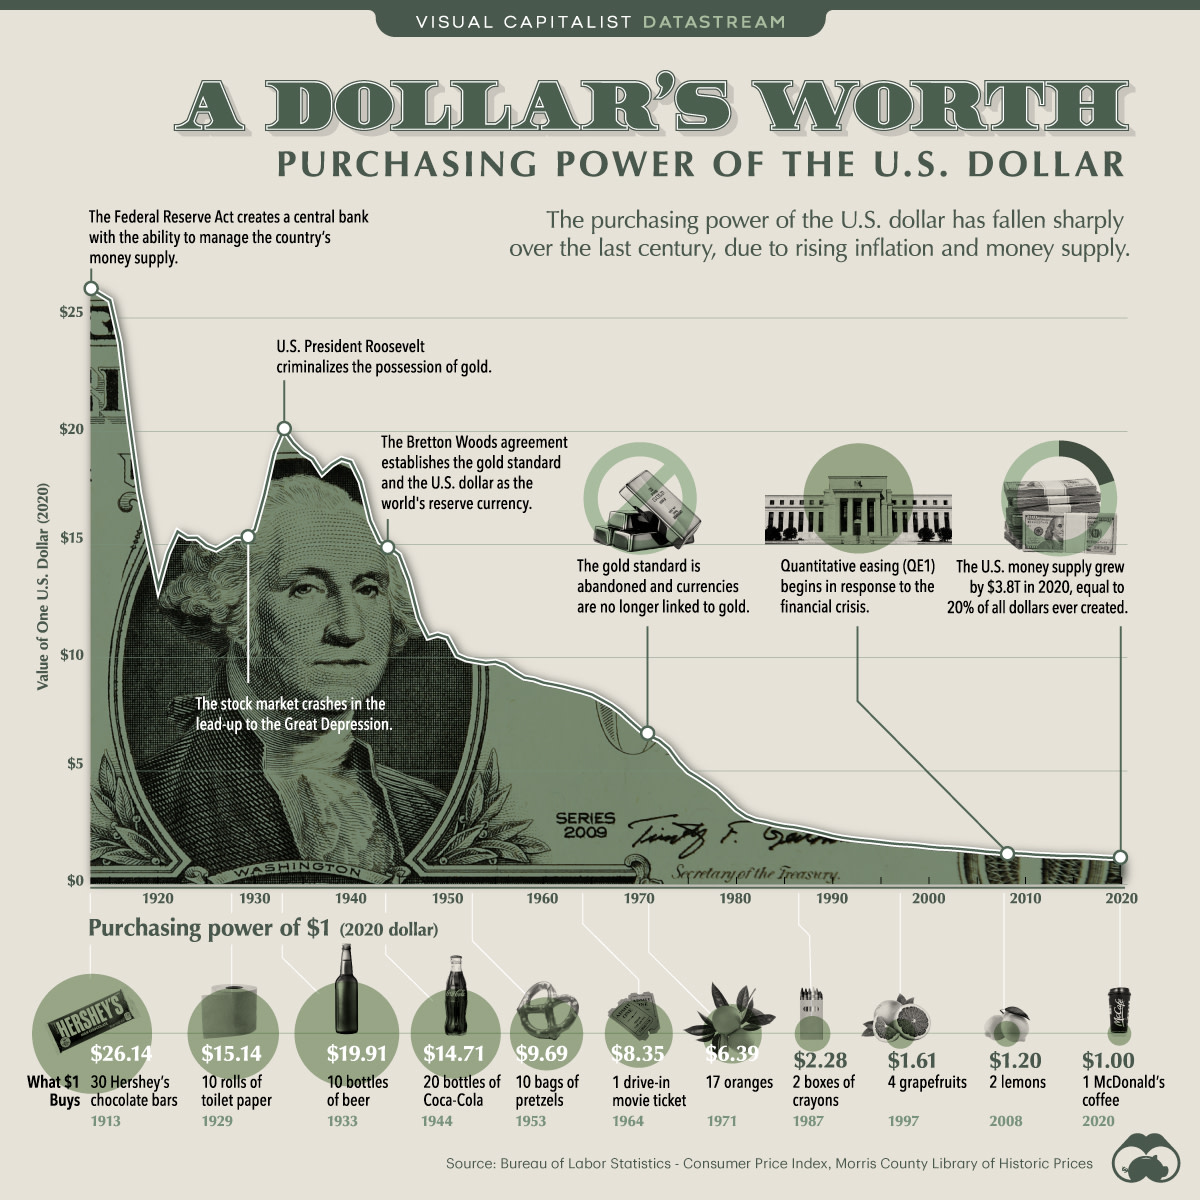 US dollar is one of the strongest fiat currencies of the past 100+ years. Yet it has lost 96% of its purchasing power since 1913. Source: Visual Capitalist.